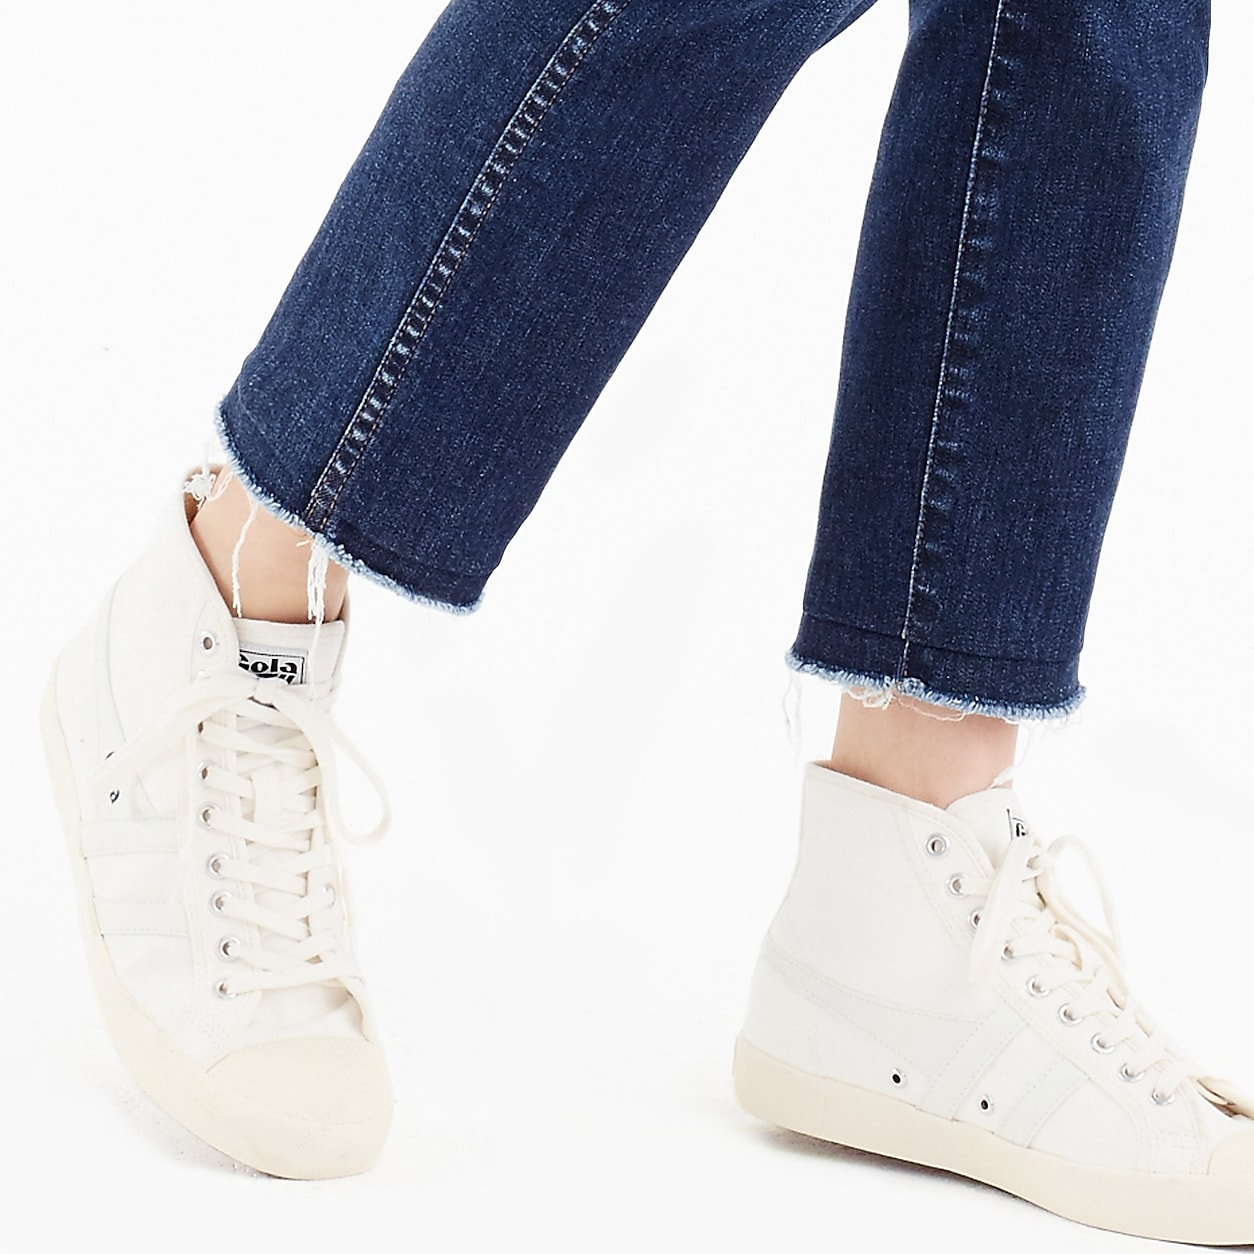 fe67e8dab2b Gola For J.Crew Coaster High-Top Sneaker | Products | High tops ...